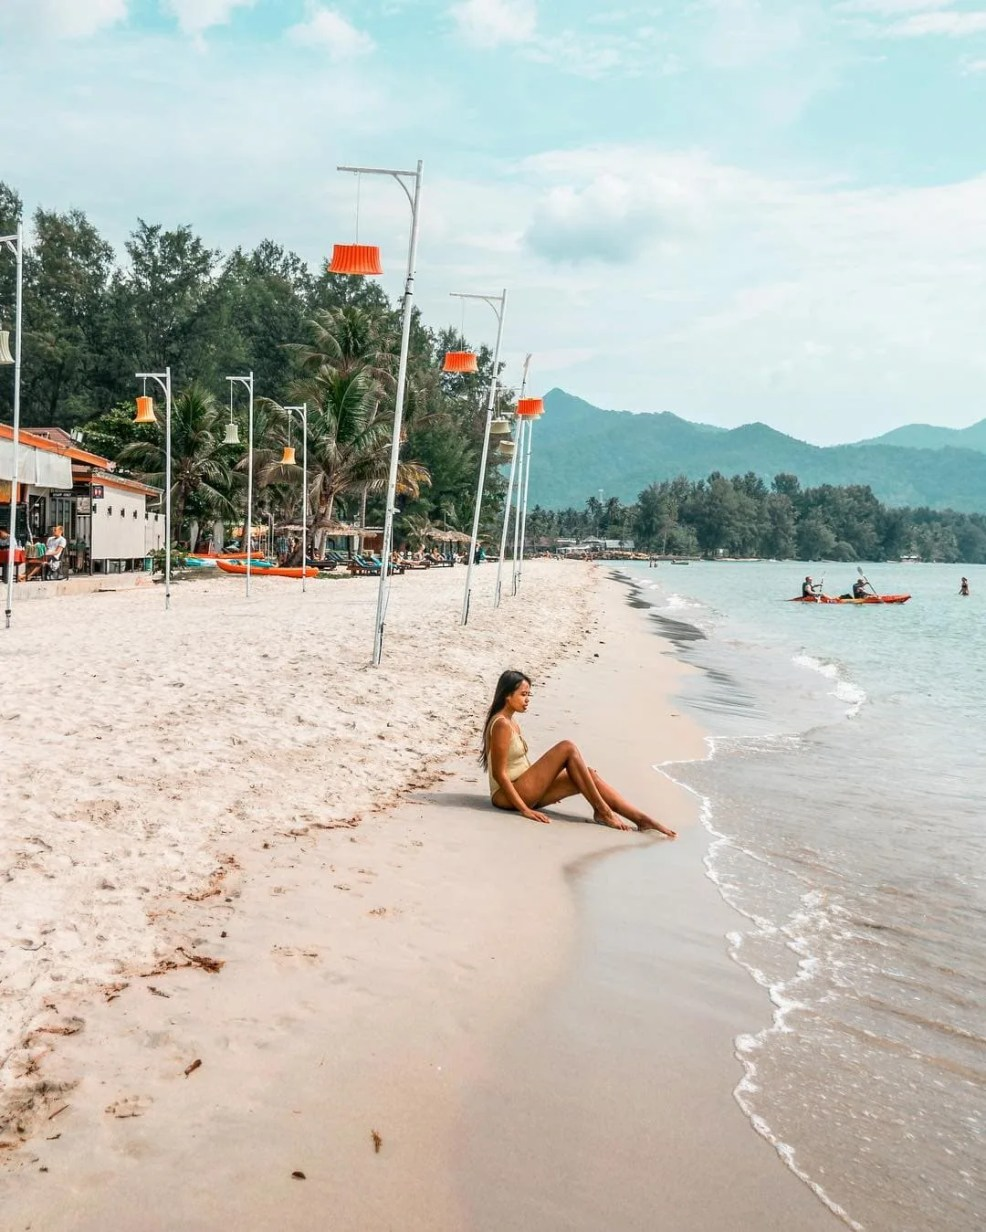 things to do in koh chang, where to stay in koh chang, how to get to koh chang, where to eat in koh chang